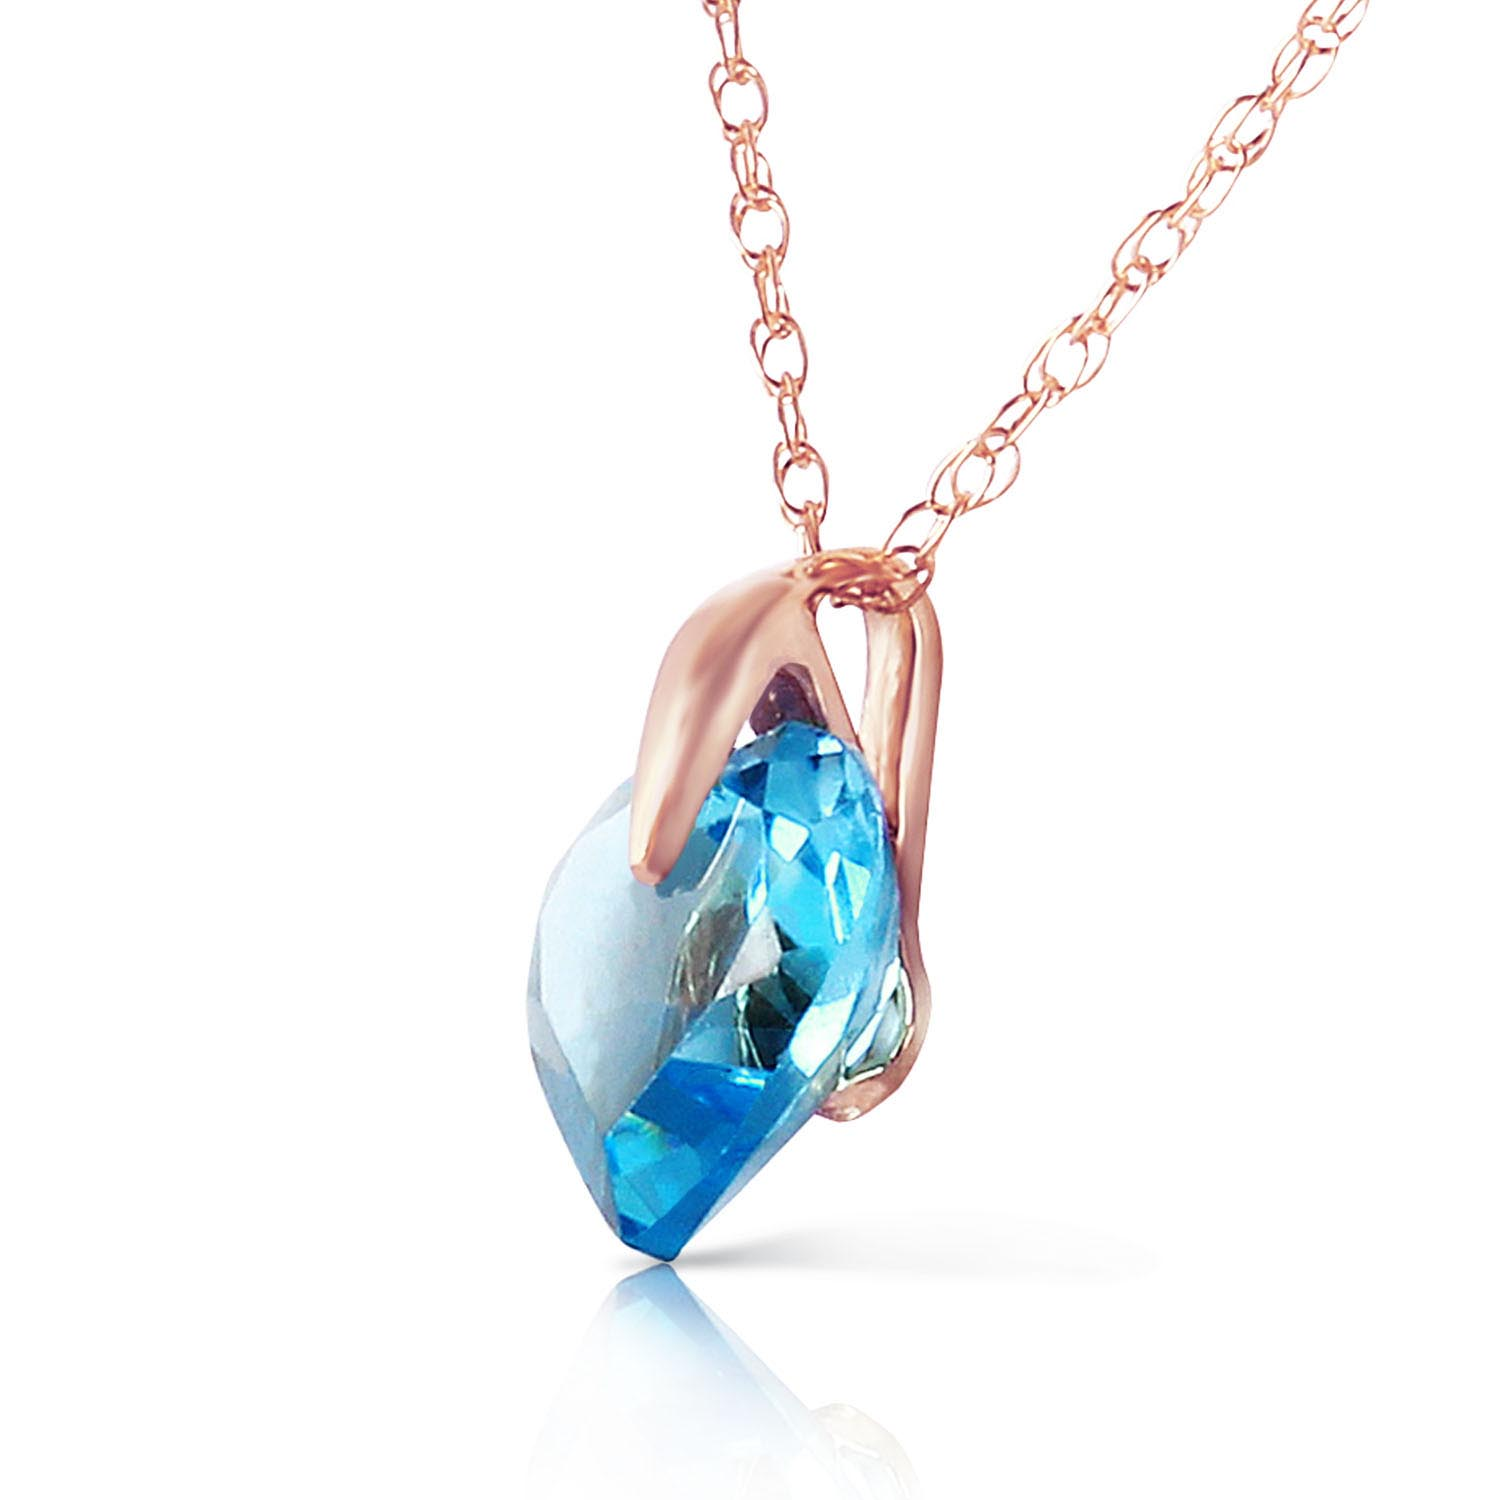 Blue Topaz Heart Pendant Necklace 1.15ct in 14K Rose Gold